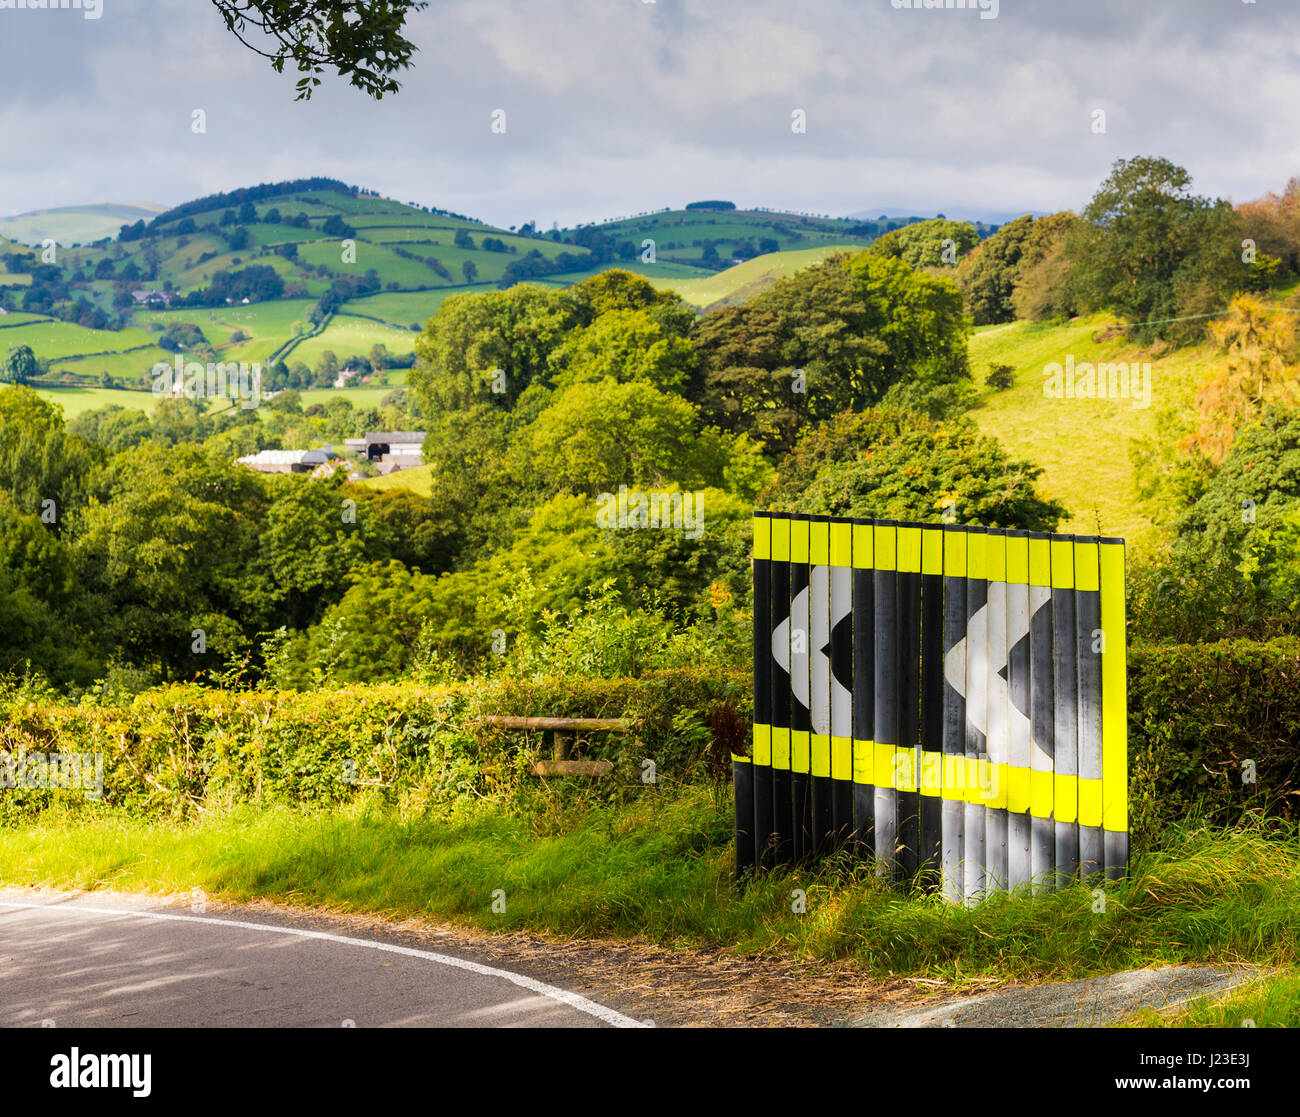 Dangerous bend warning sign in road with arrow signs in rolling countryside, UK - Stock Image